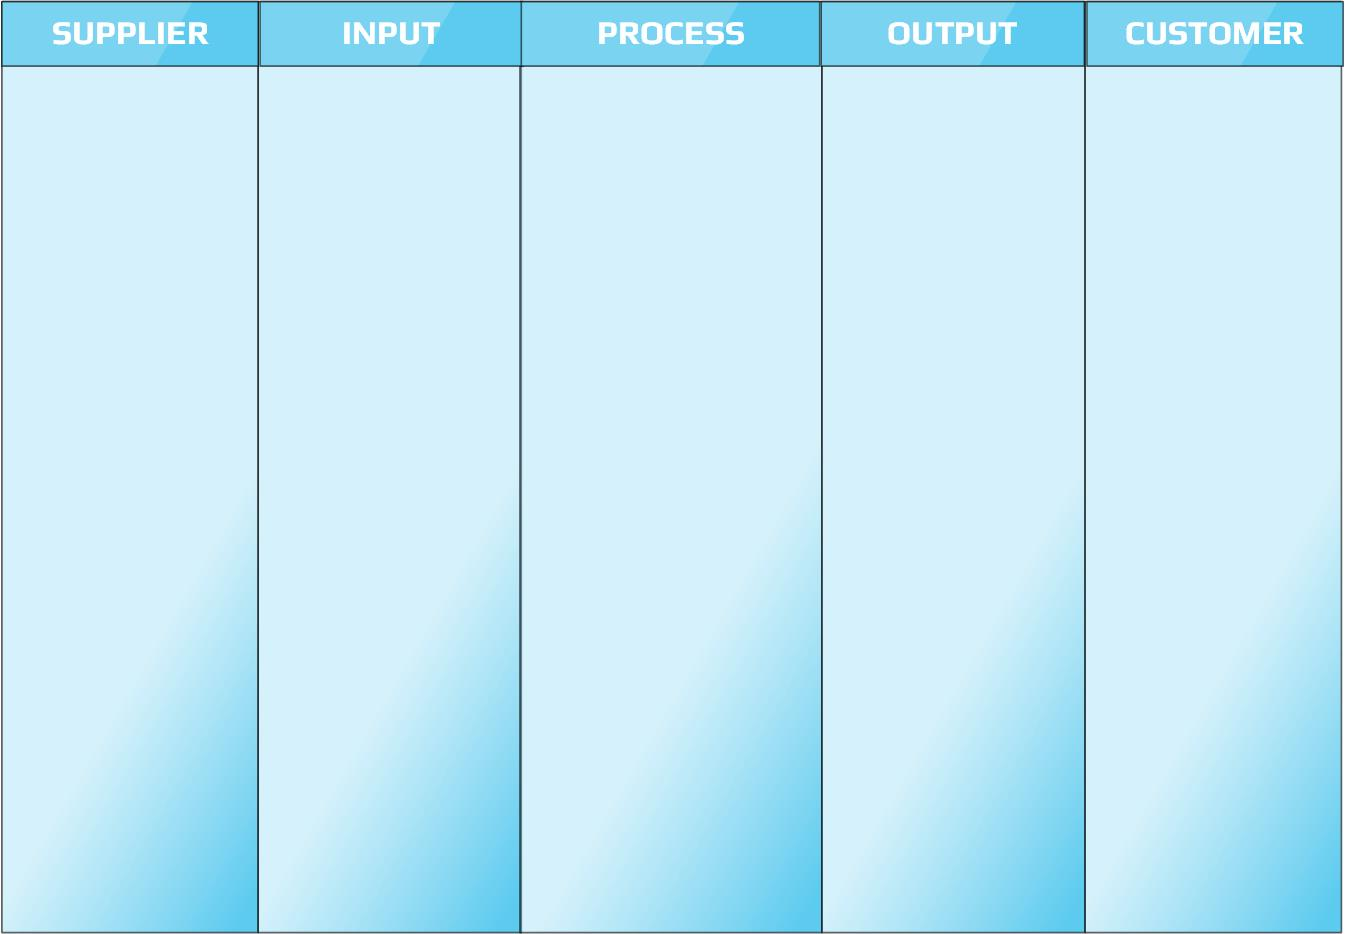 SIPOC Diagram Layout